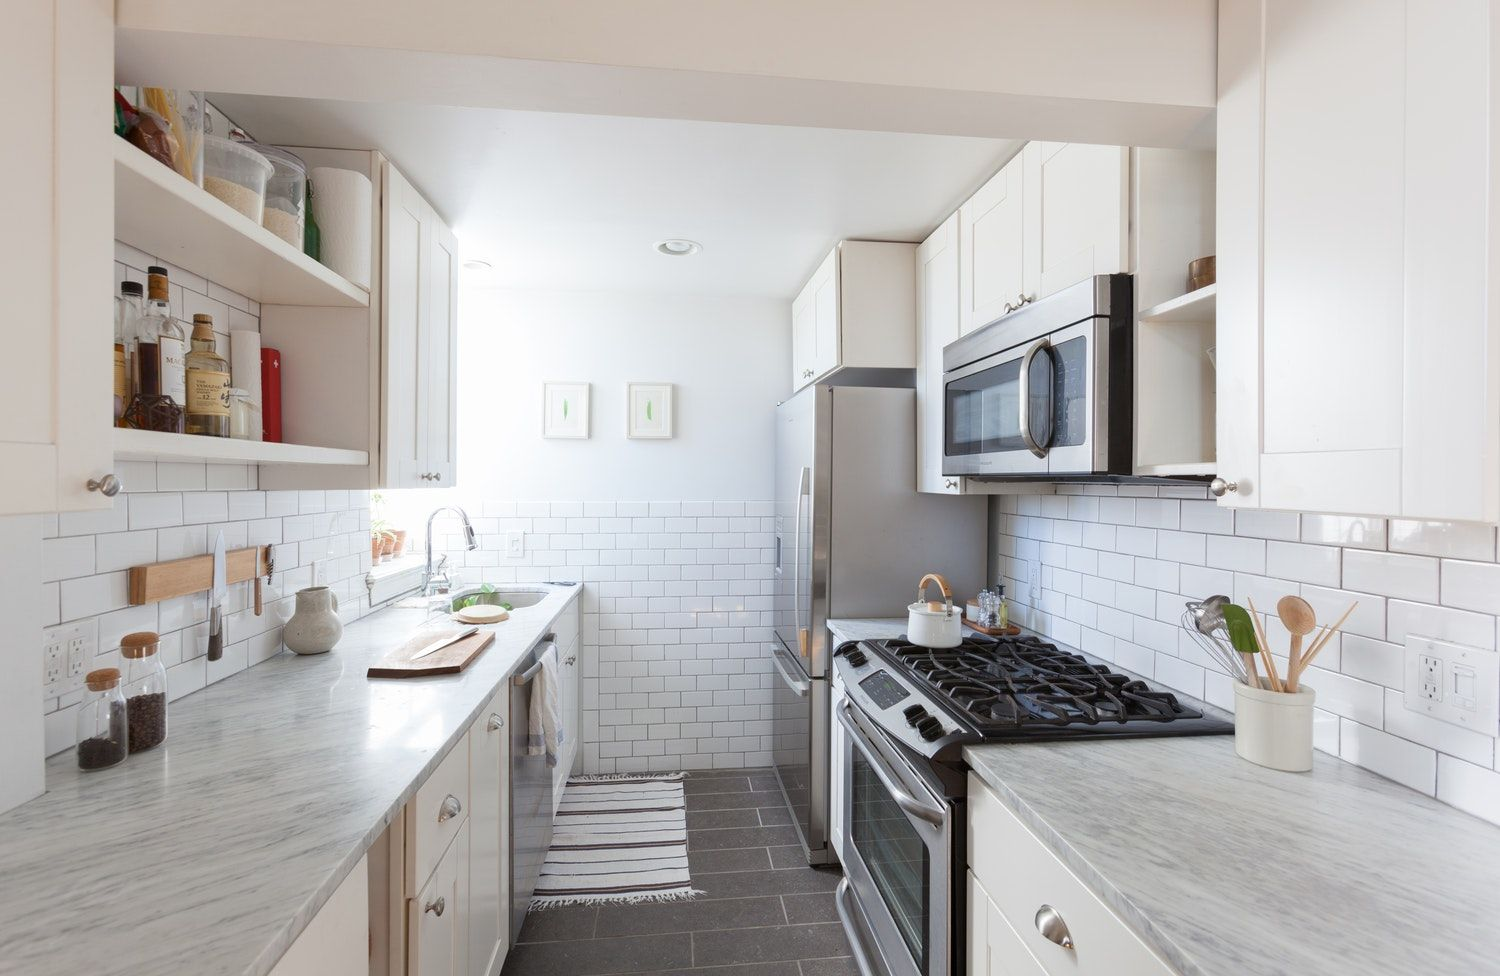 7 Things In Your Kitchen You Don T Have To Clean Nearly As Often As You Do Galley Kitchen Design Small Galley Kitchens Kitchen Design Small